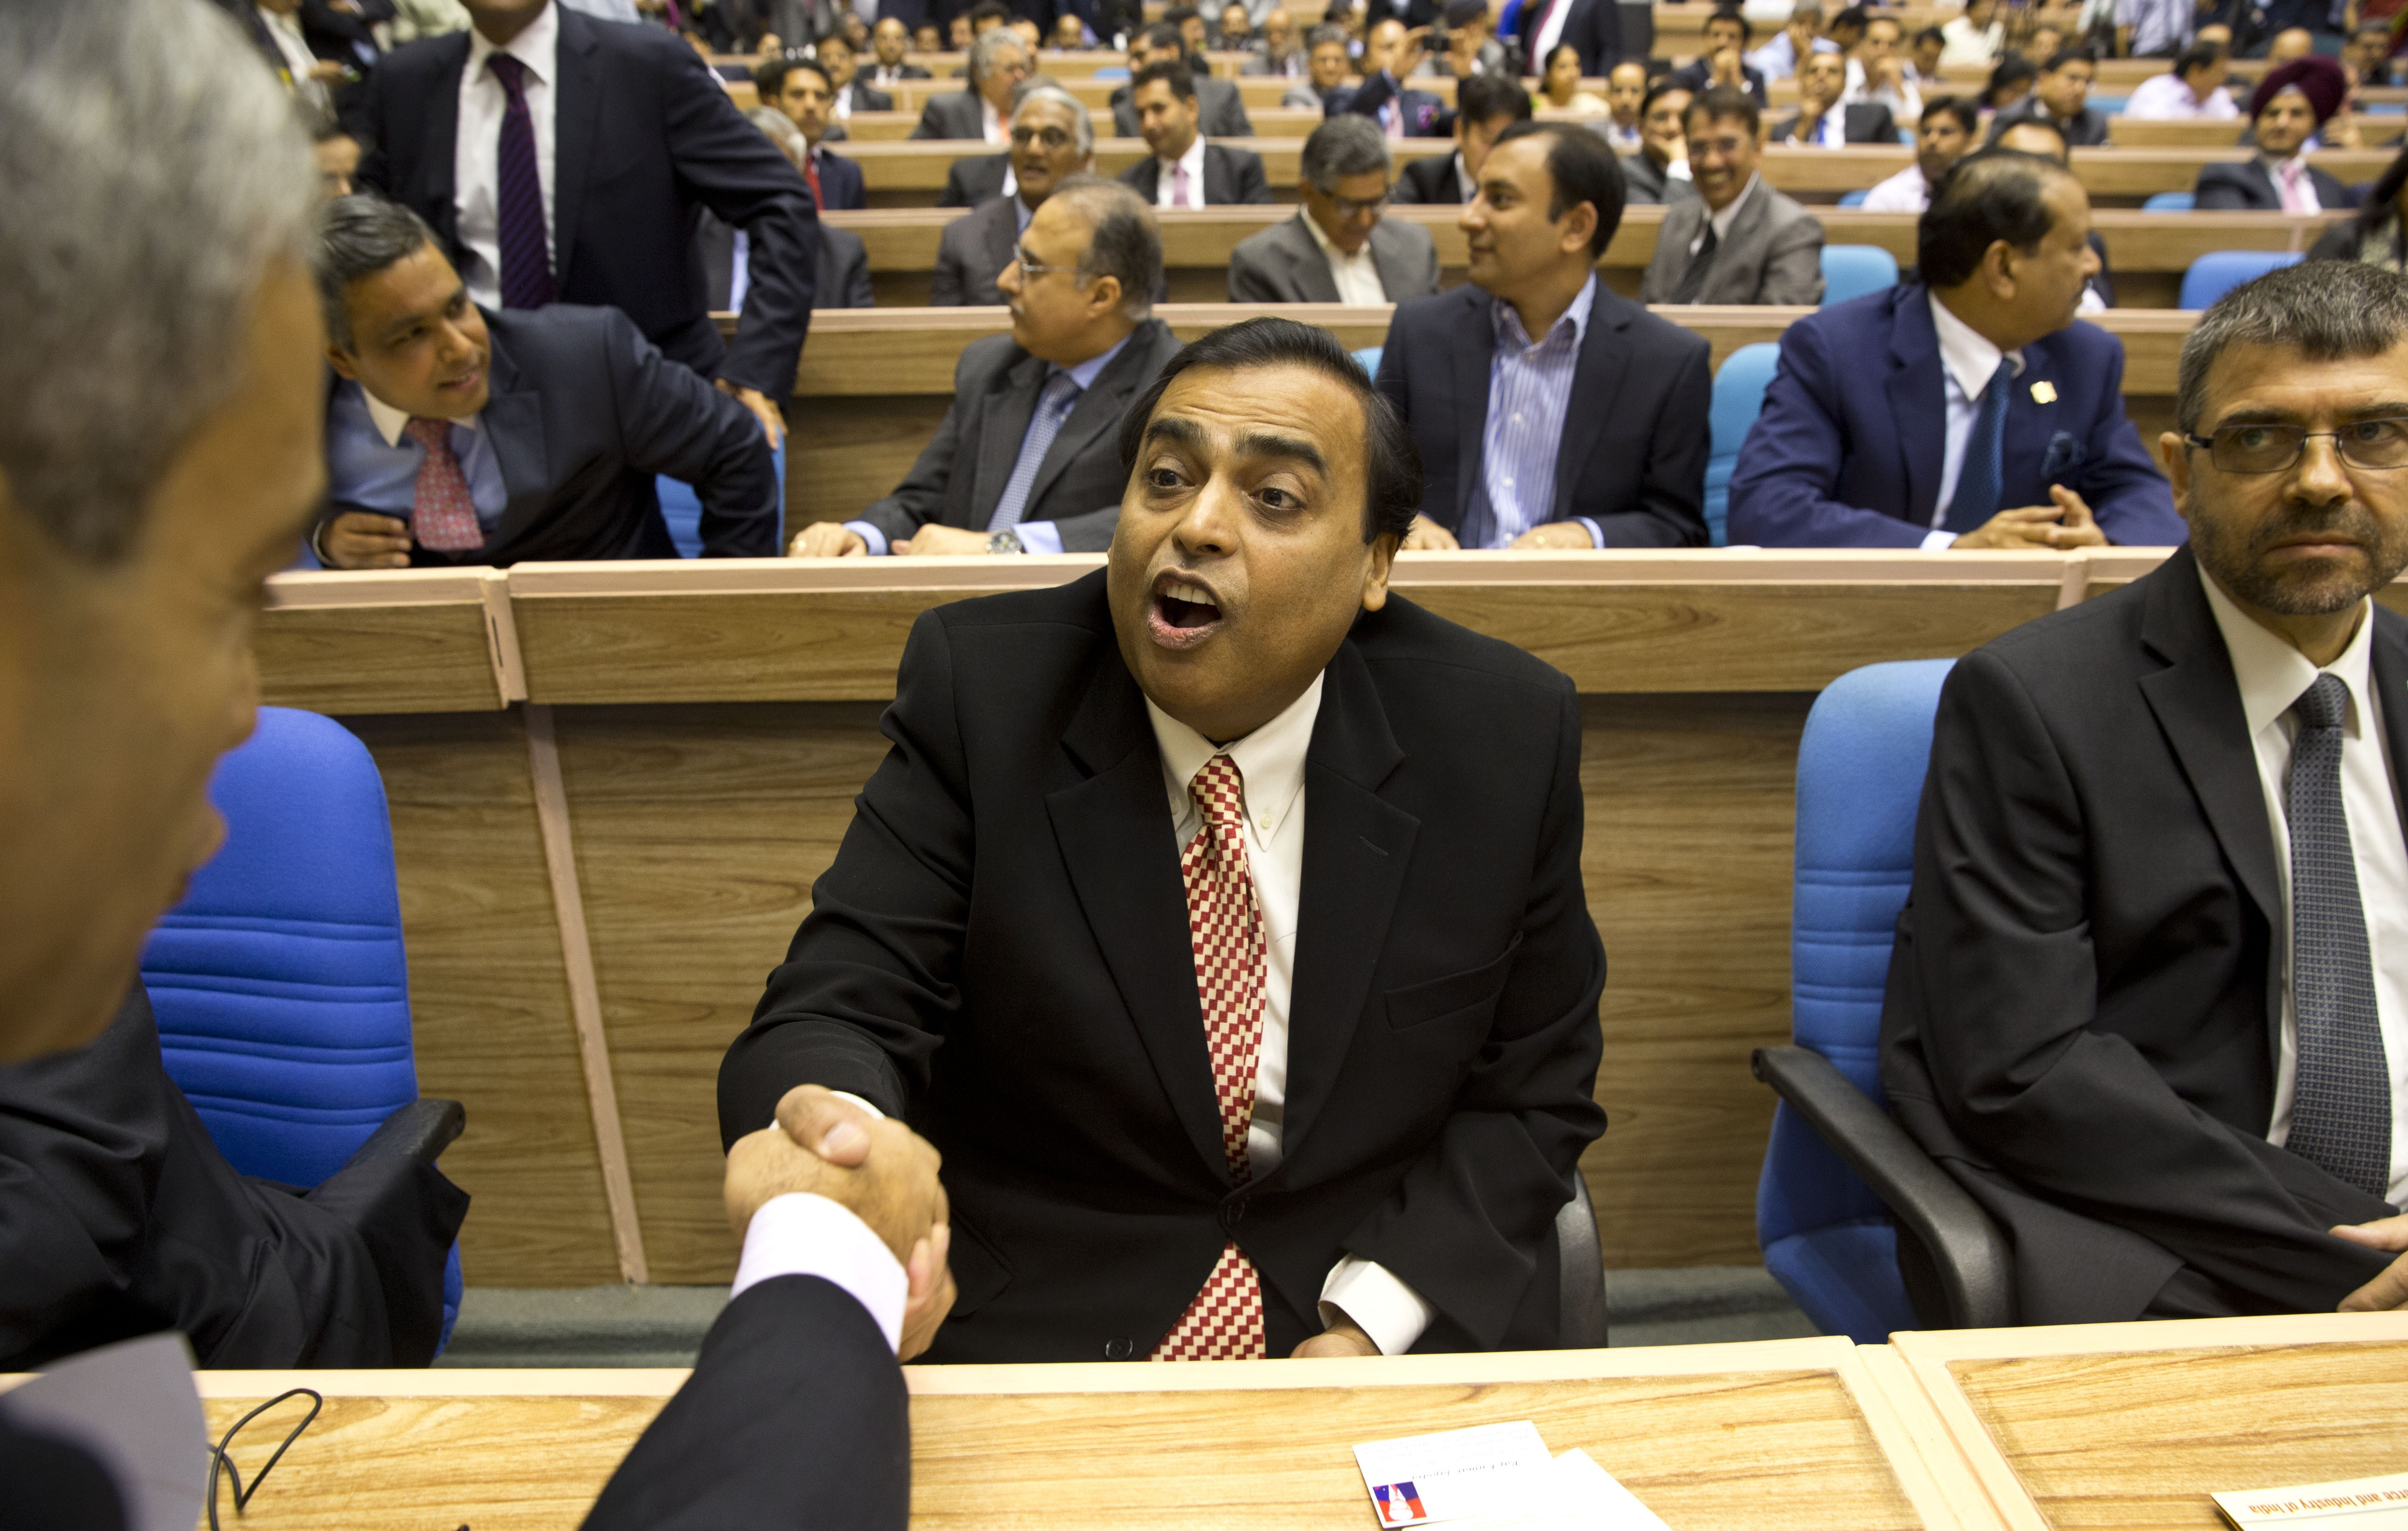 Us News Car Rankings >> Mukesh Ambani, India's Richest Man, Gives a Billion People Free Internet | World | US News